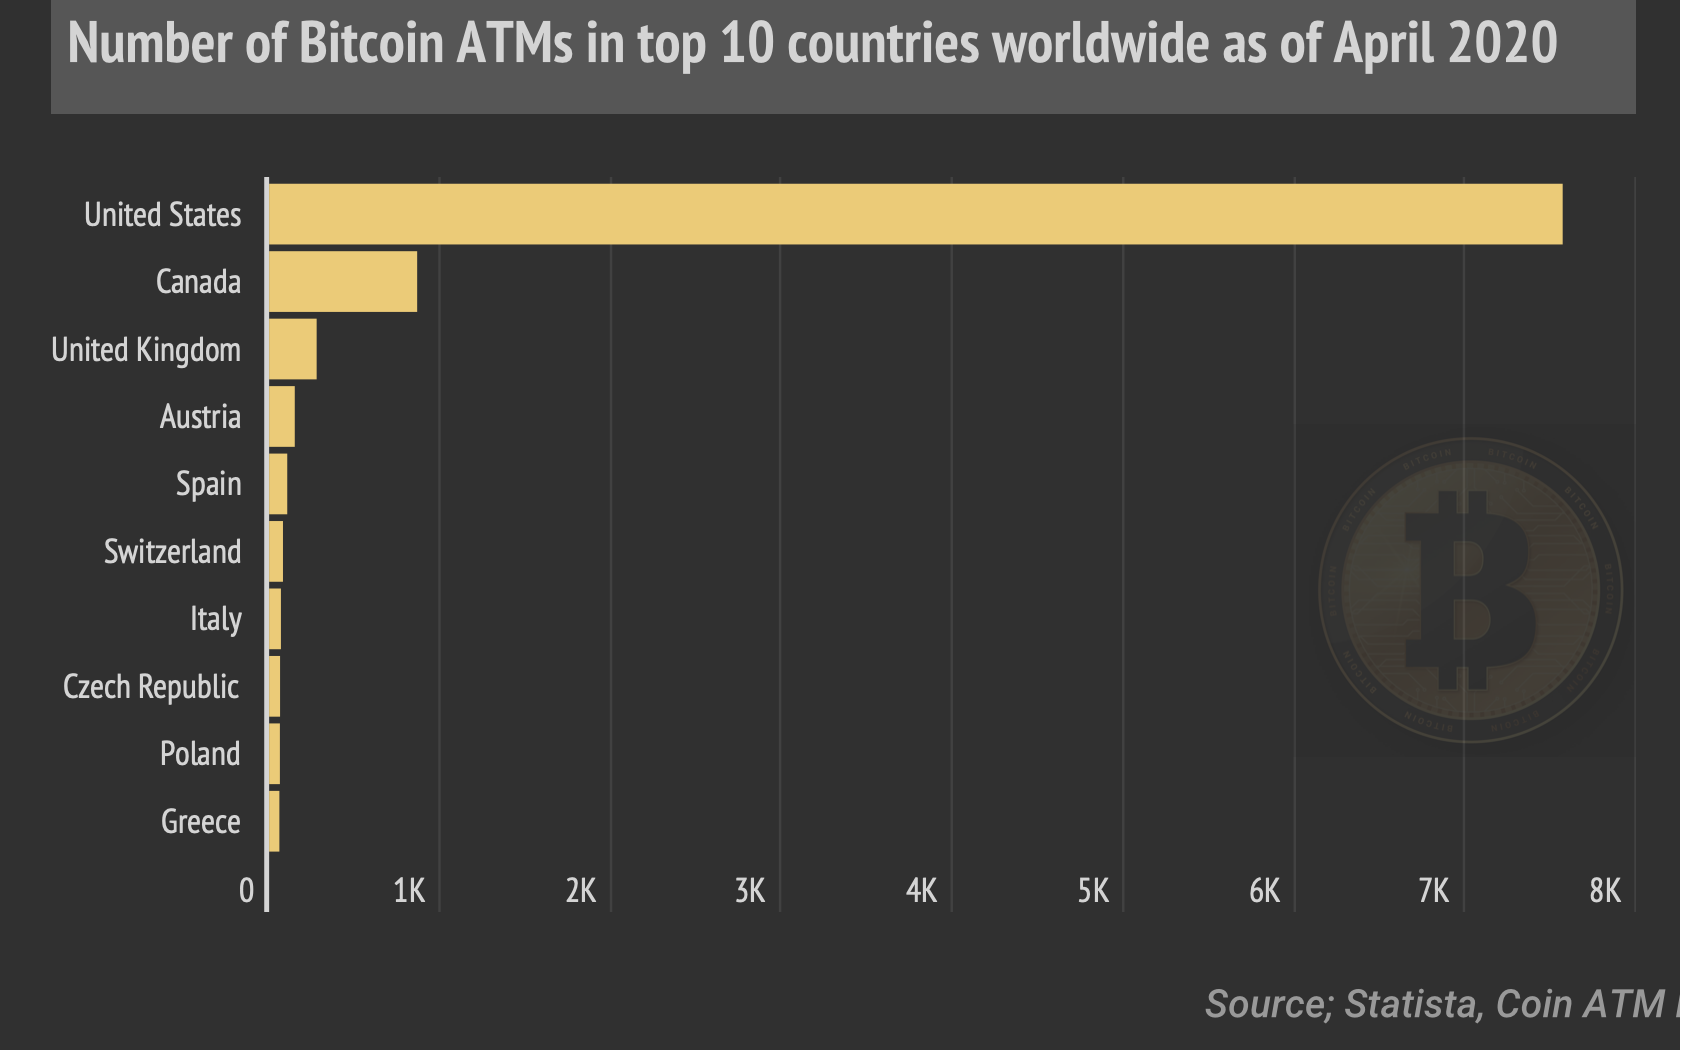 Bitcoin ATMs by country